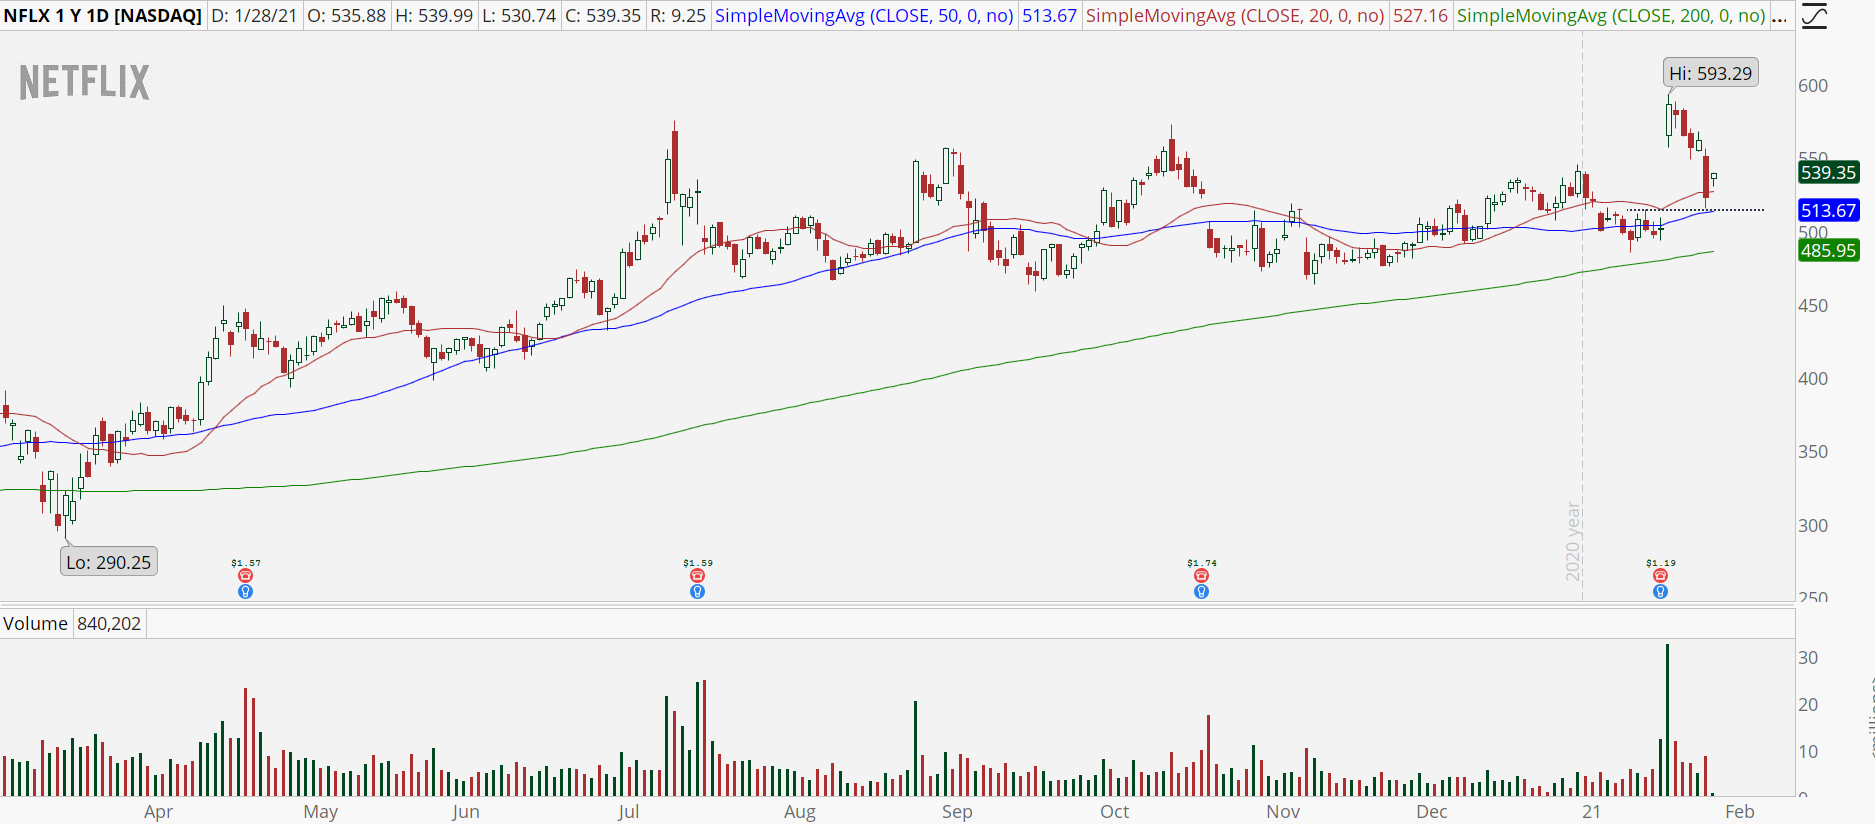 Netflix (NFLX) stock chart with gap fill